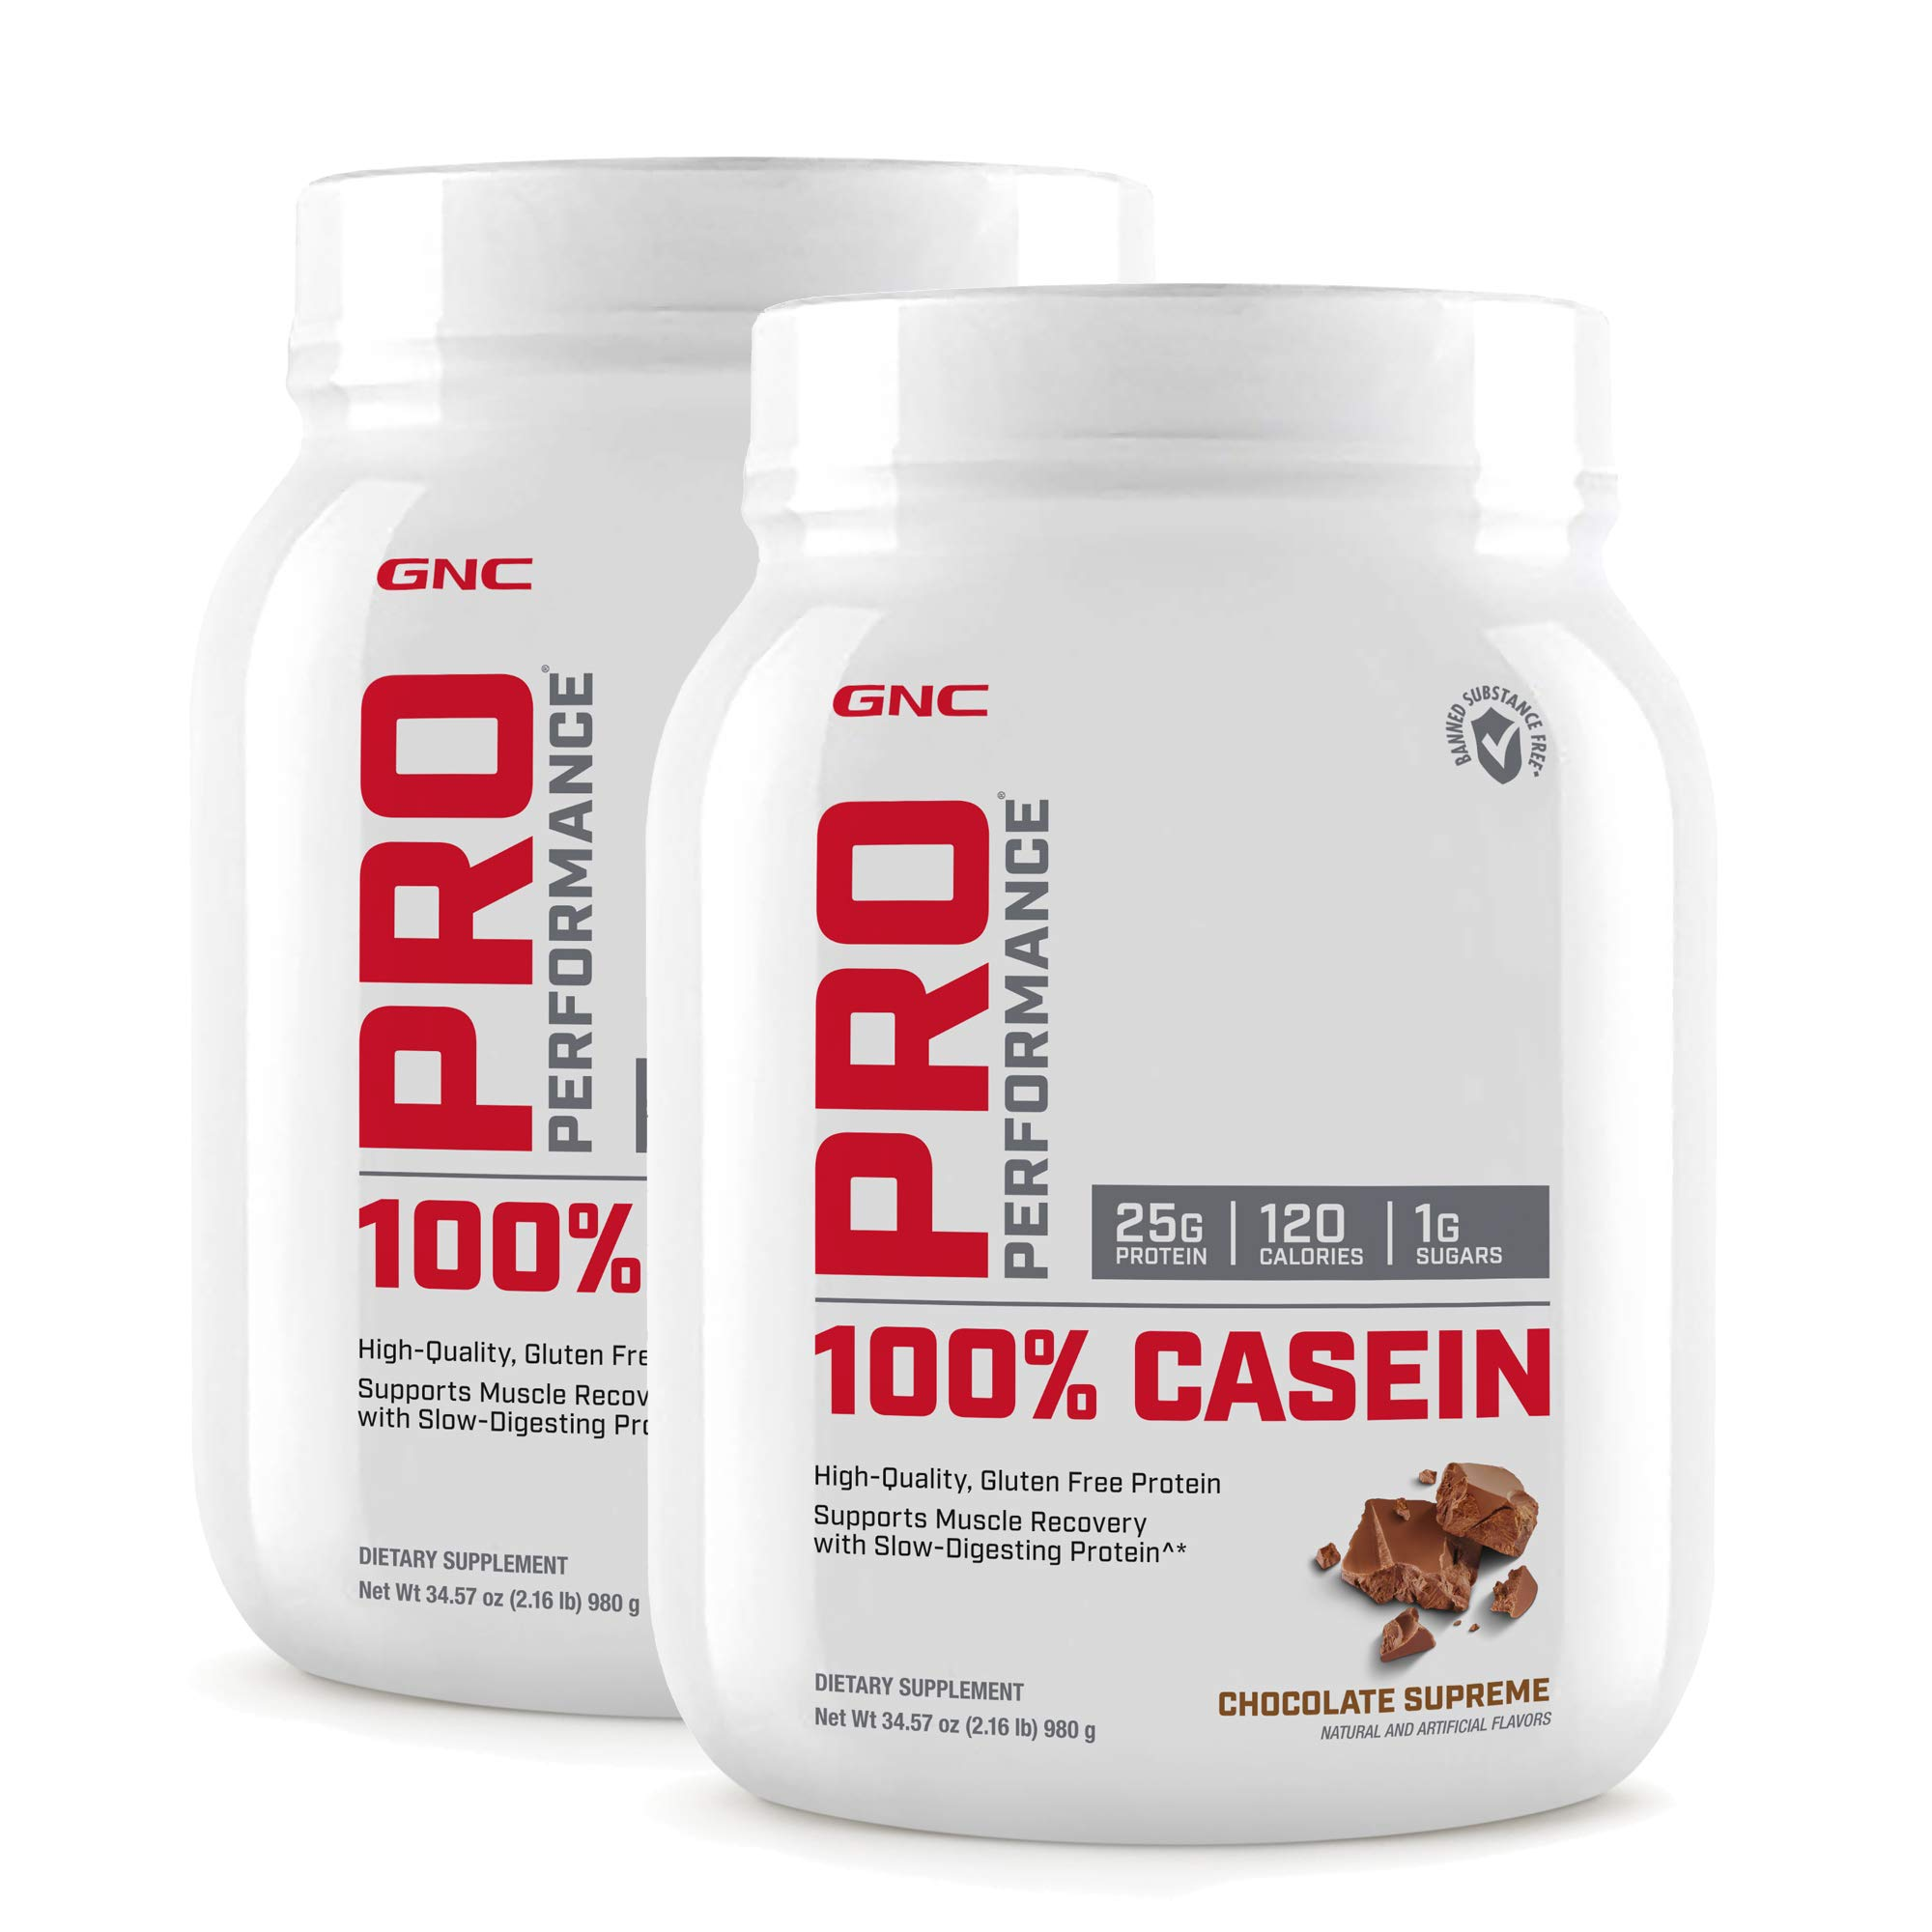 GNC Pro Performance 100 Casein - Chocolate Supreme - Twin Pack by GNC